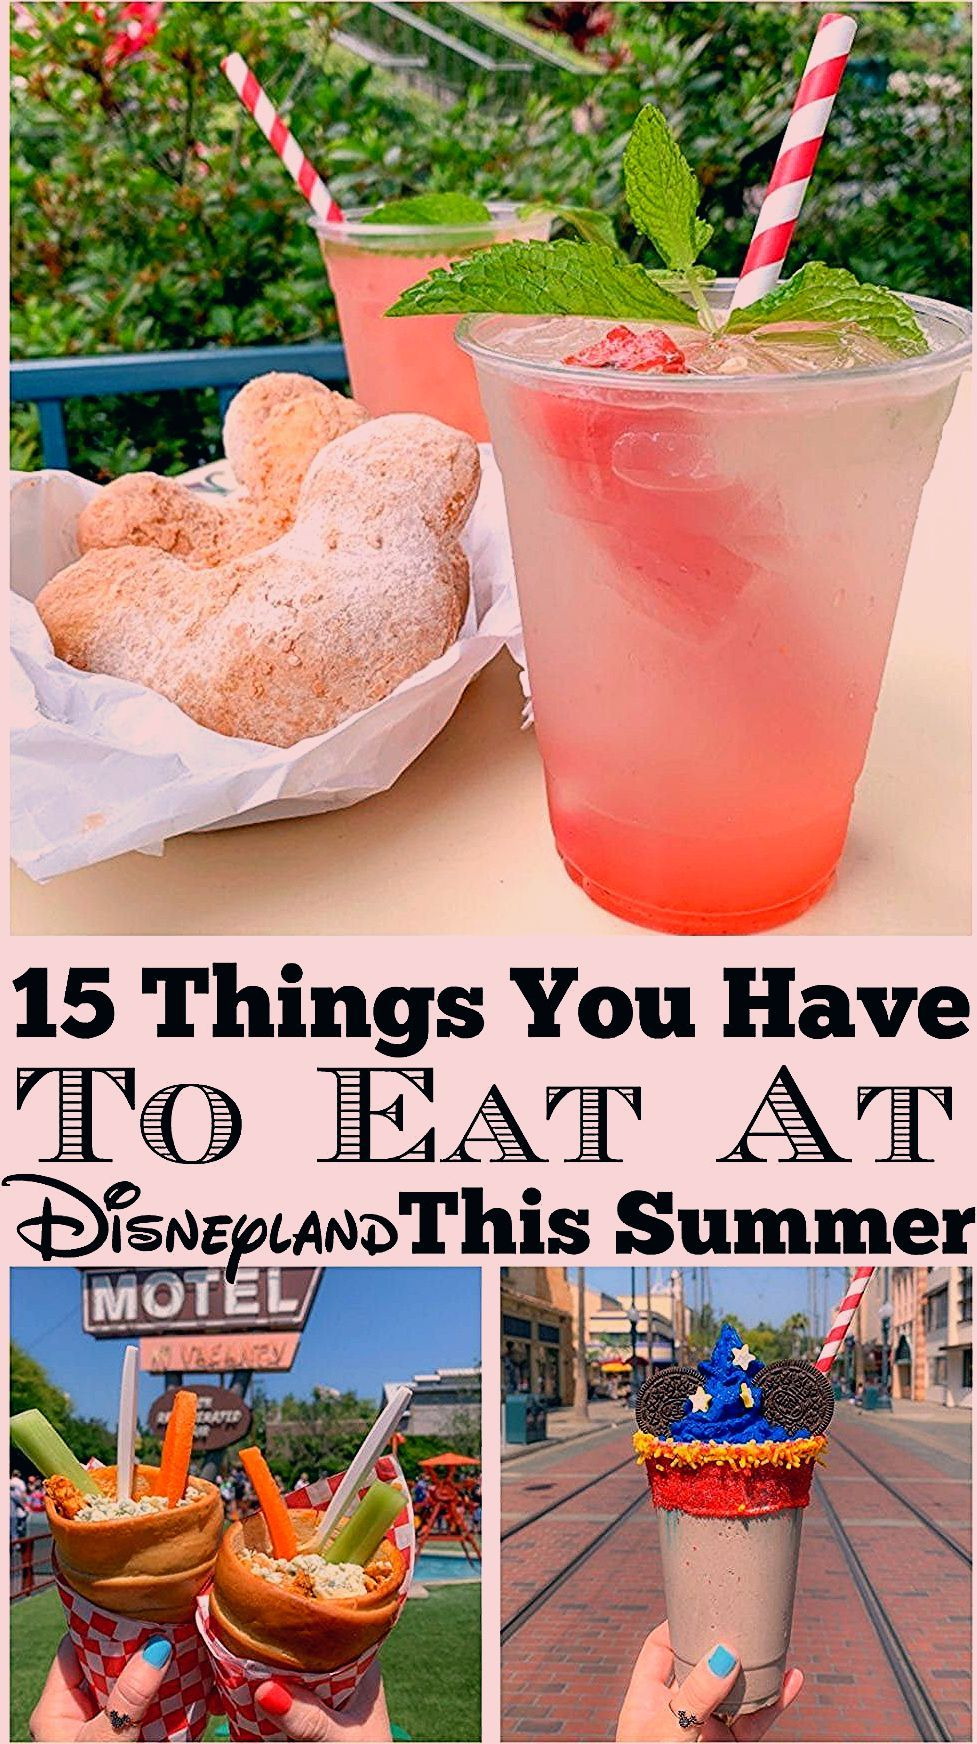 Photo of 15 Things To Eat at Disneyland This Summer